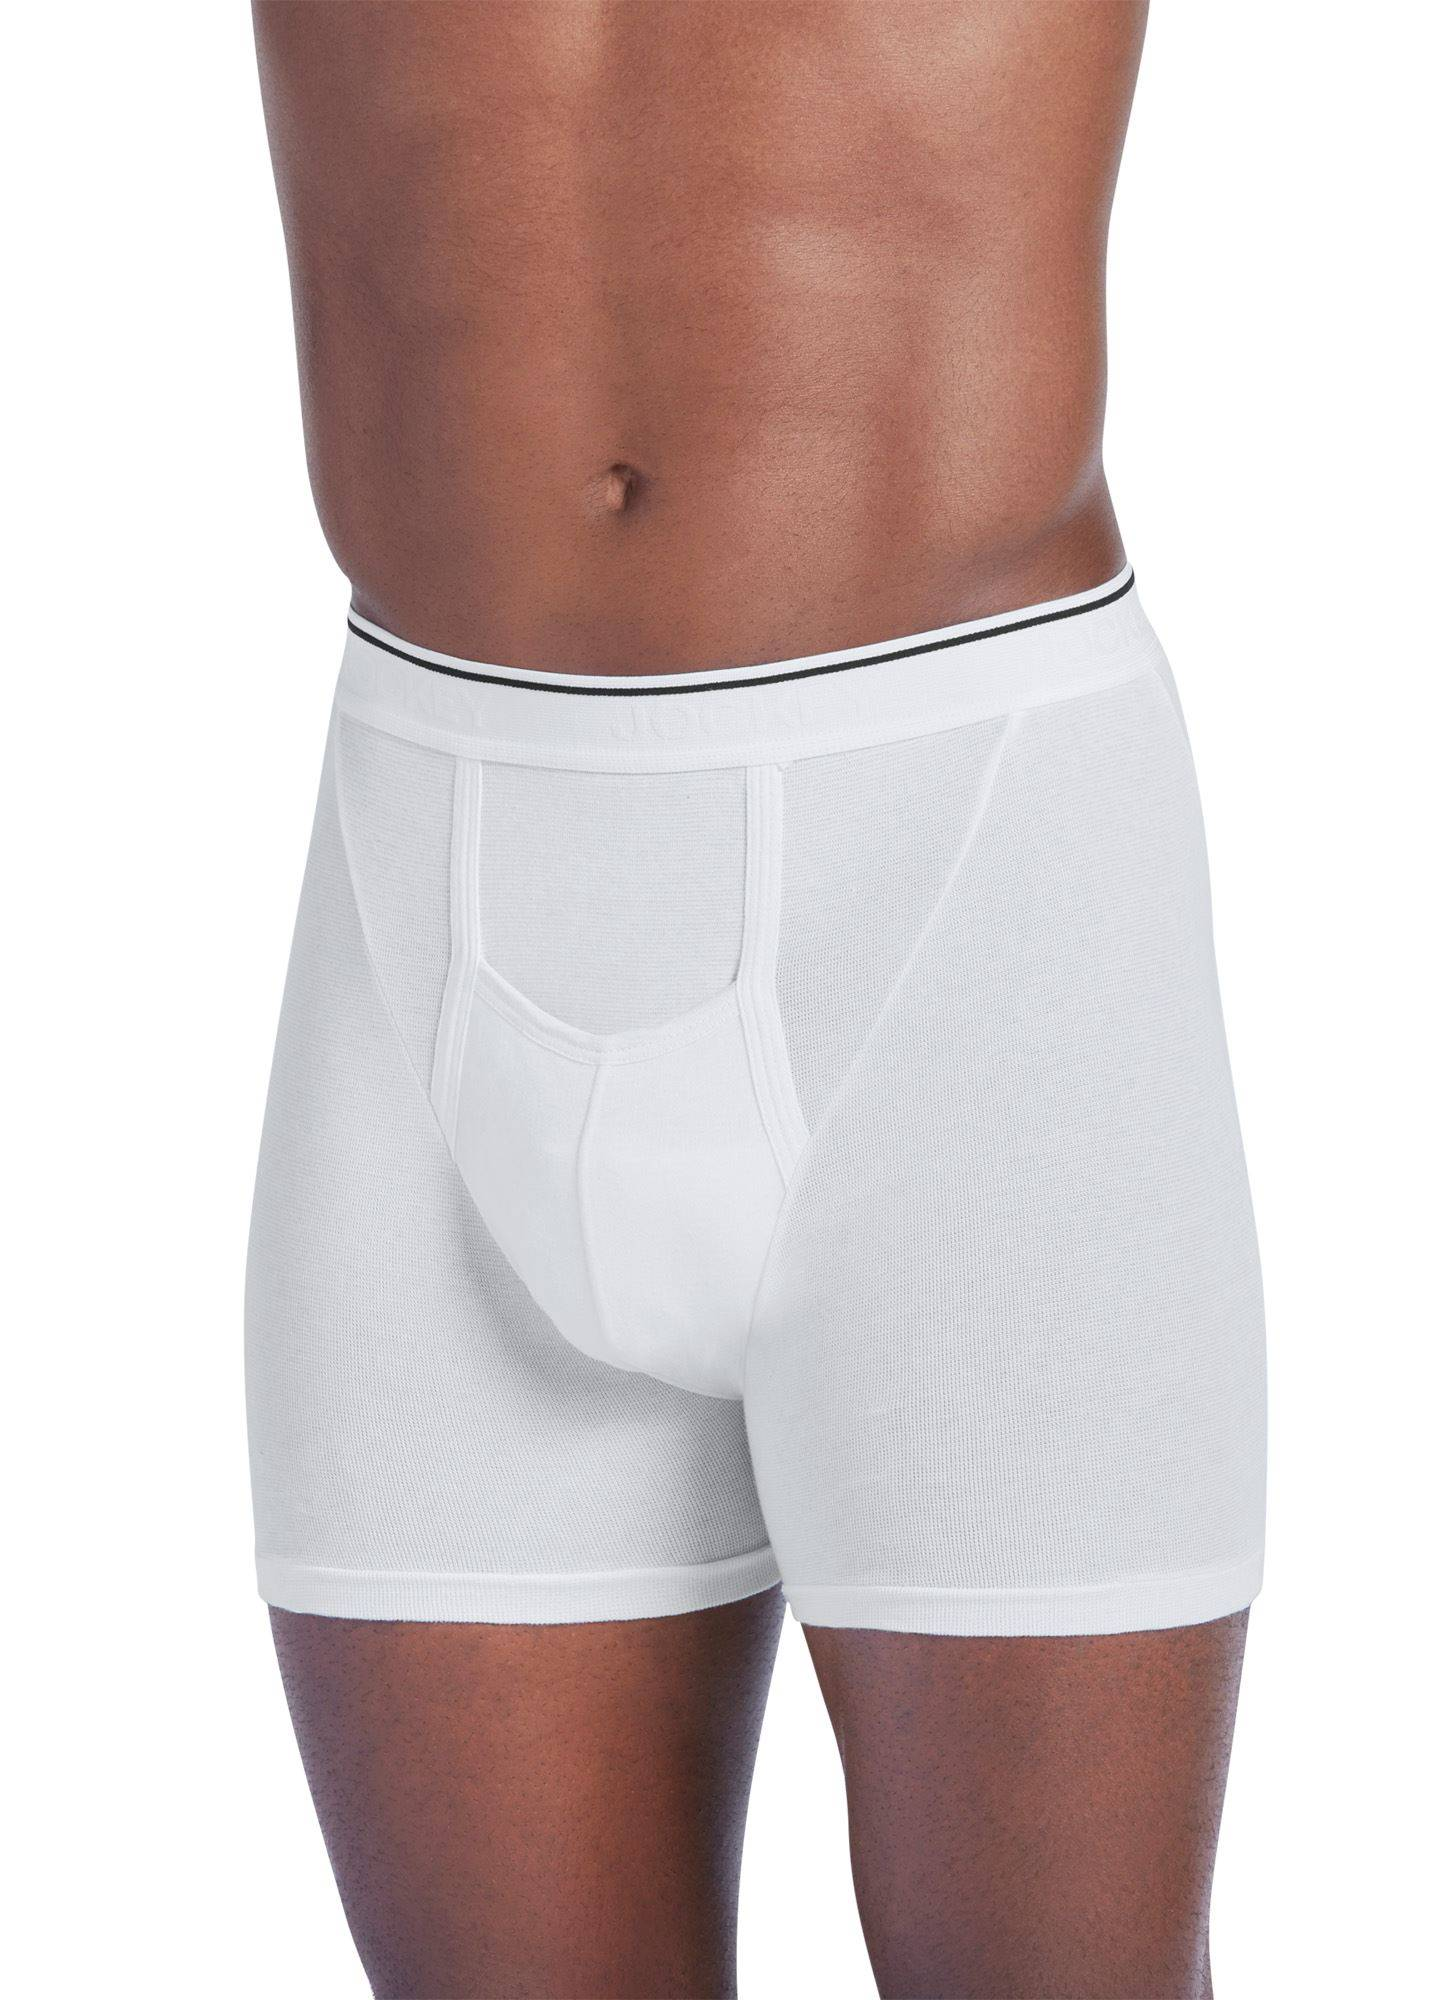 Shop online for Men's Boxer Briefs at shopnow-jl6vb8f5.ga Find stretch fabric, classic styles & designer prints. Free Shipping. Free Returns. All the time.